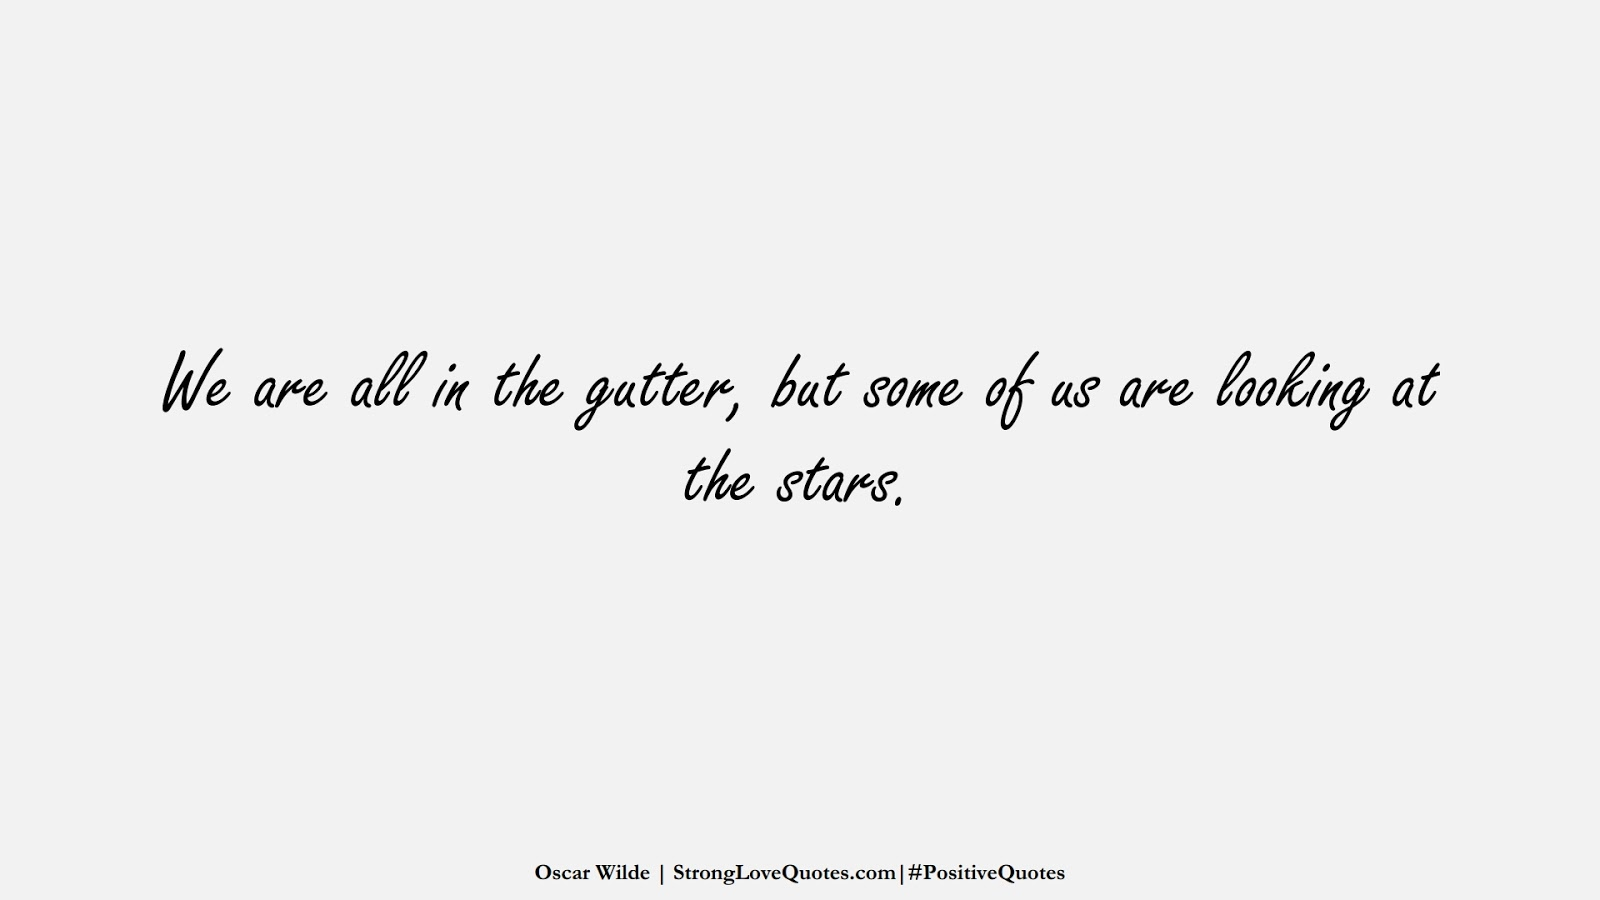 We are all in the gutter, but some of us are looking at the stars. (Oscar Wilde);  #PositiveQuotes